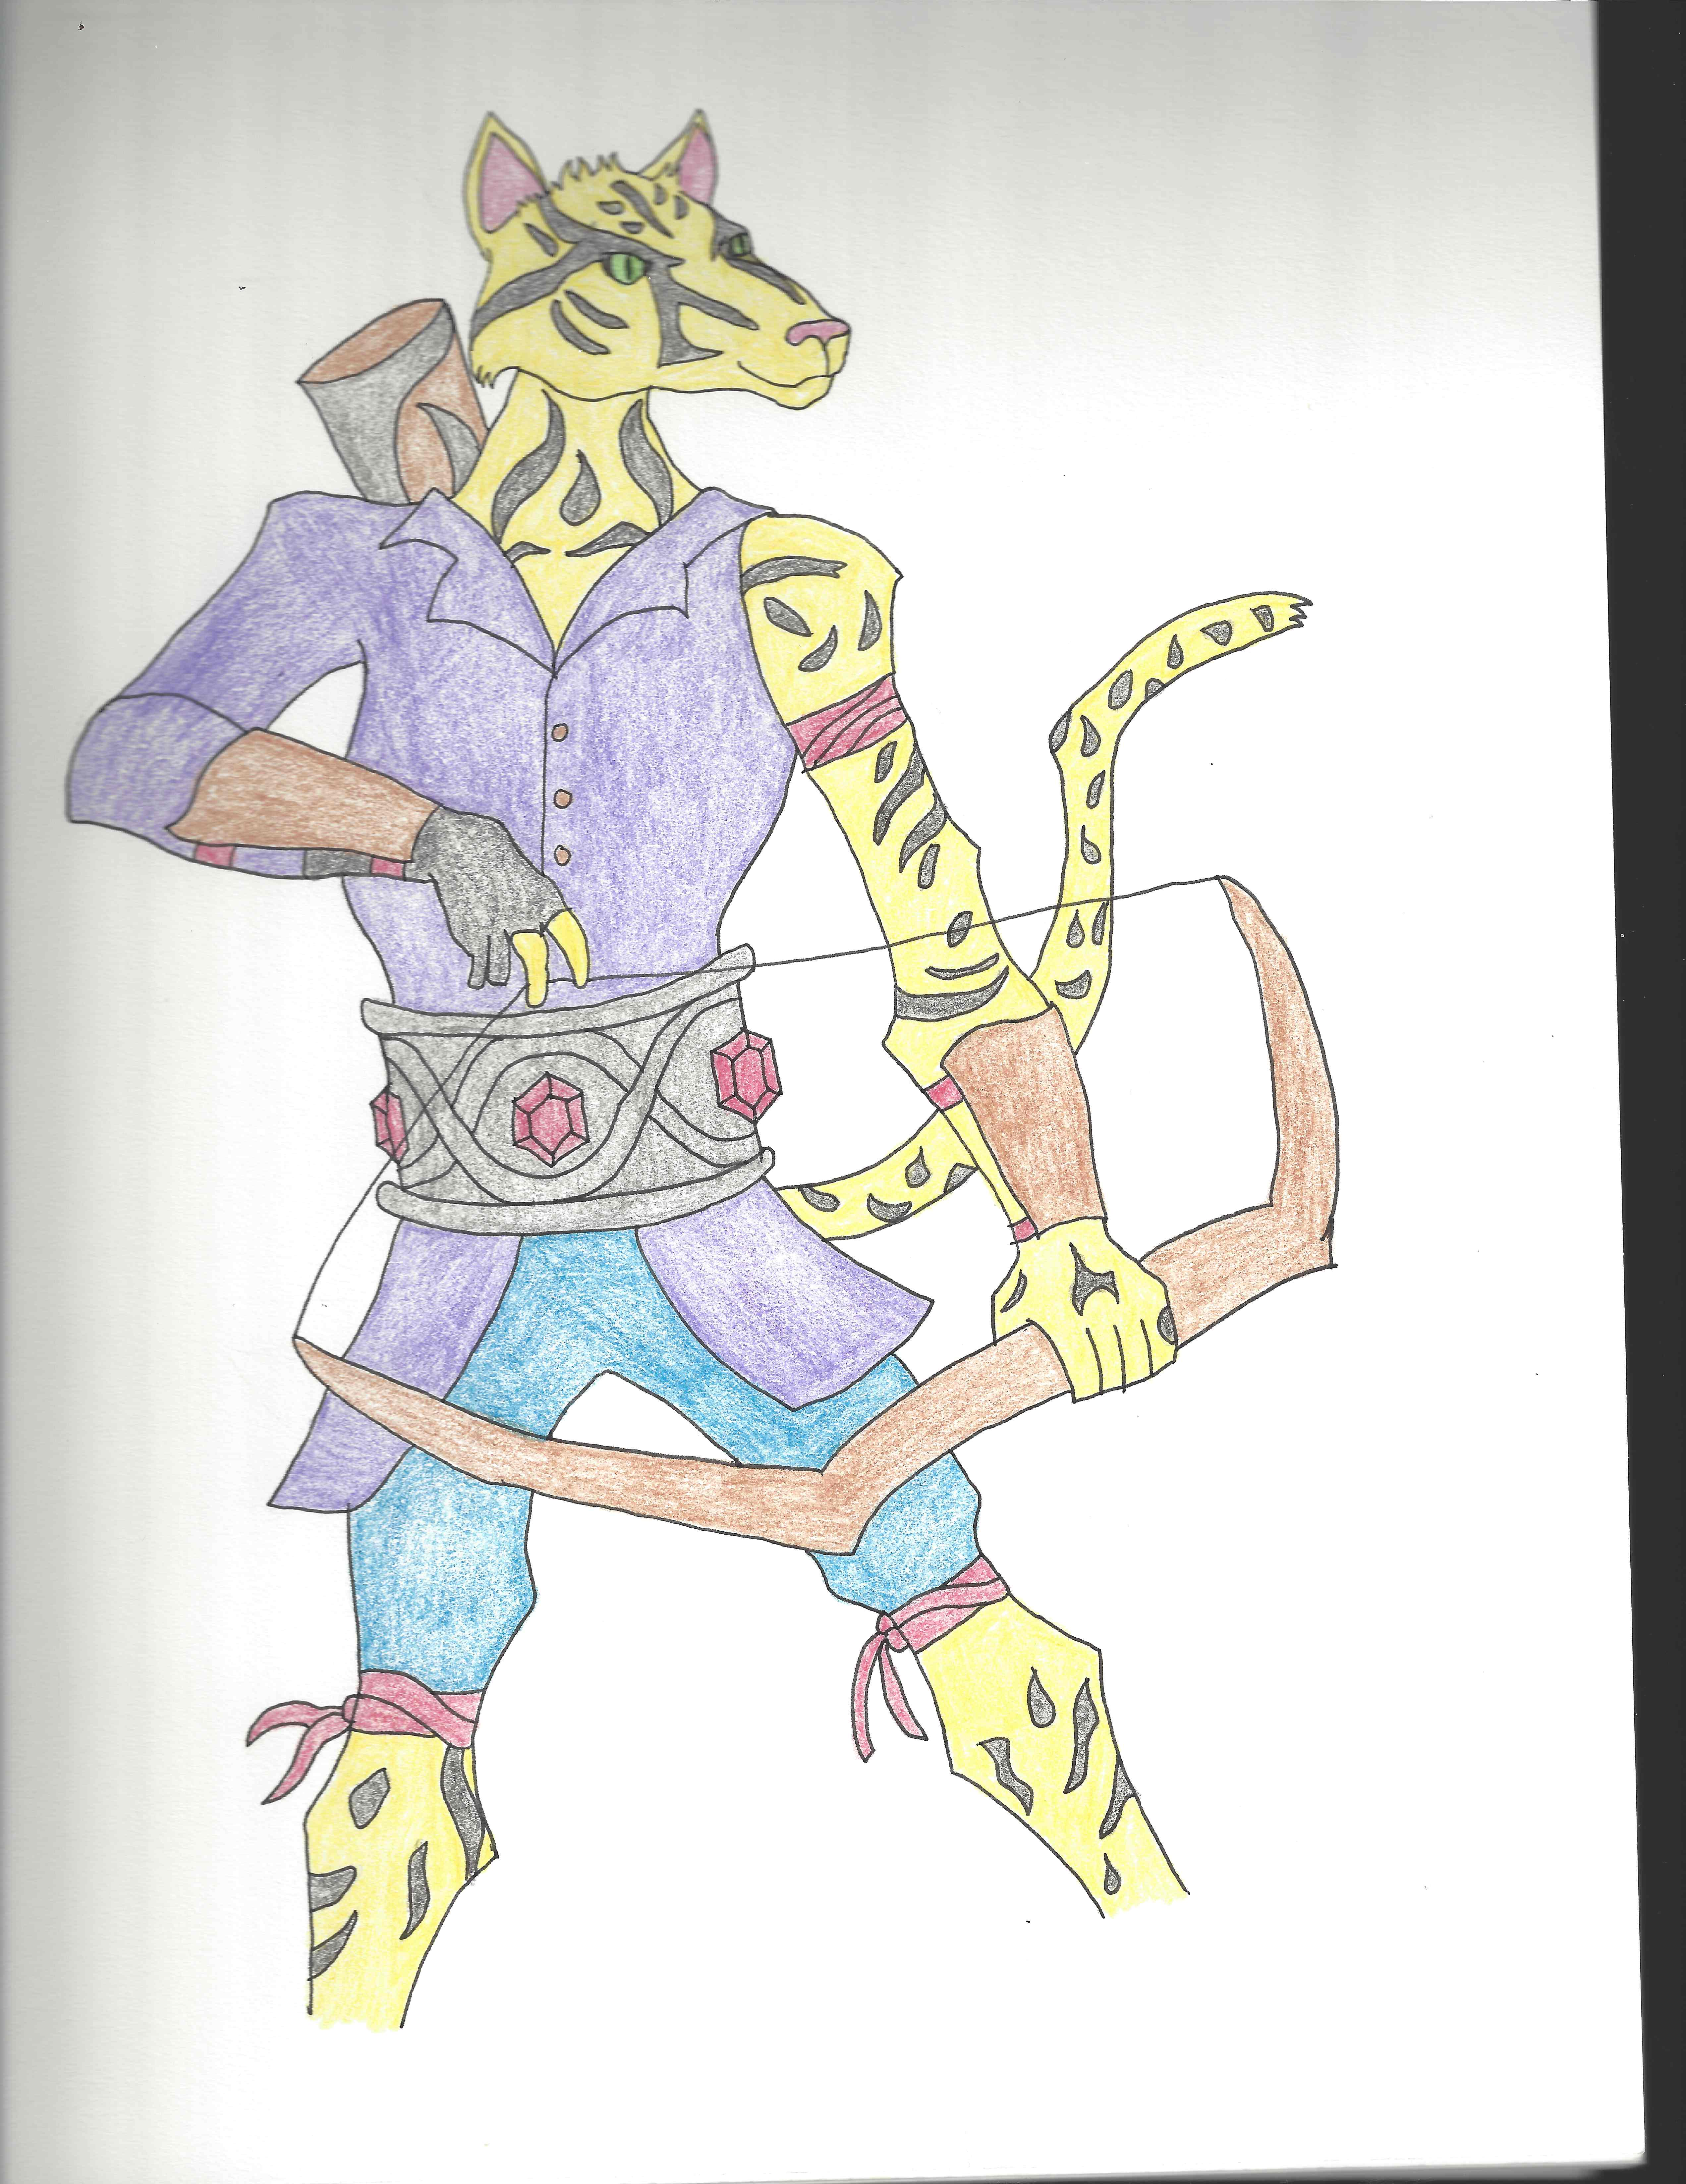 Character Concept The Tabaxi Speedy Sniper Bravo Bard This is significant because the other common +2 dexterity race (halflings) are limited by their feline agility: bravo bard